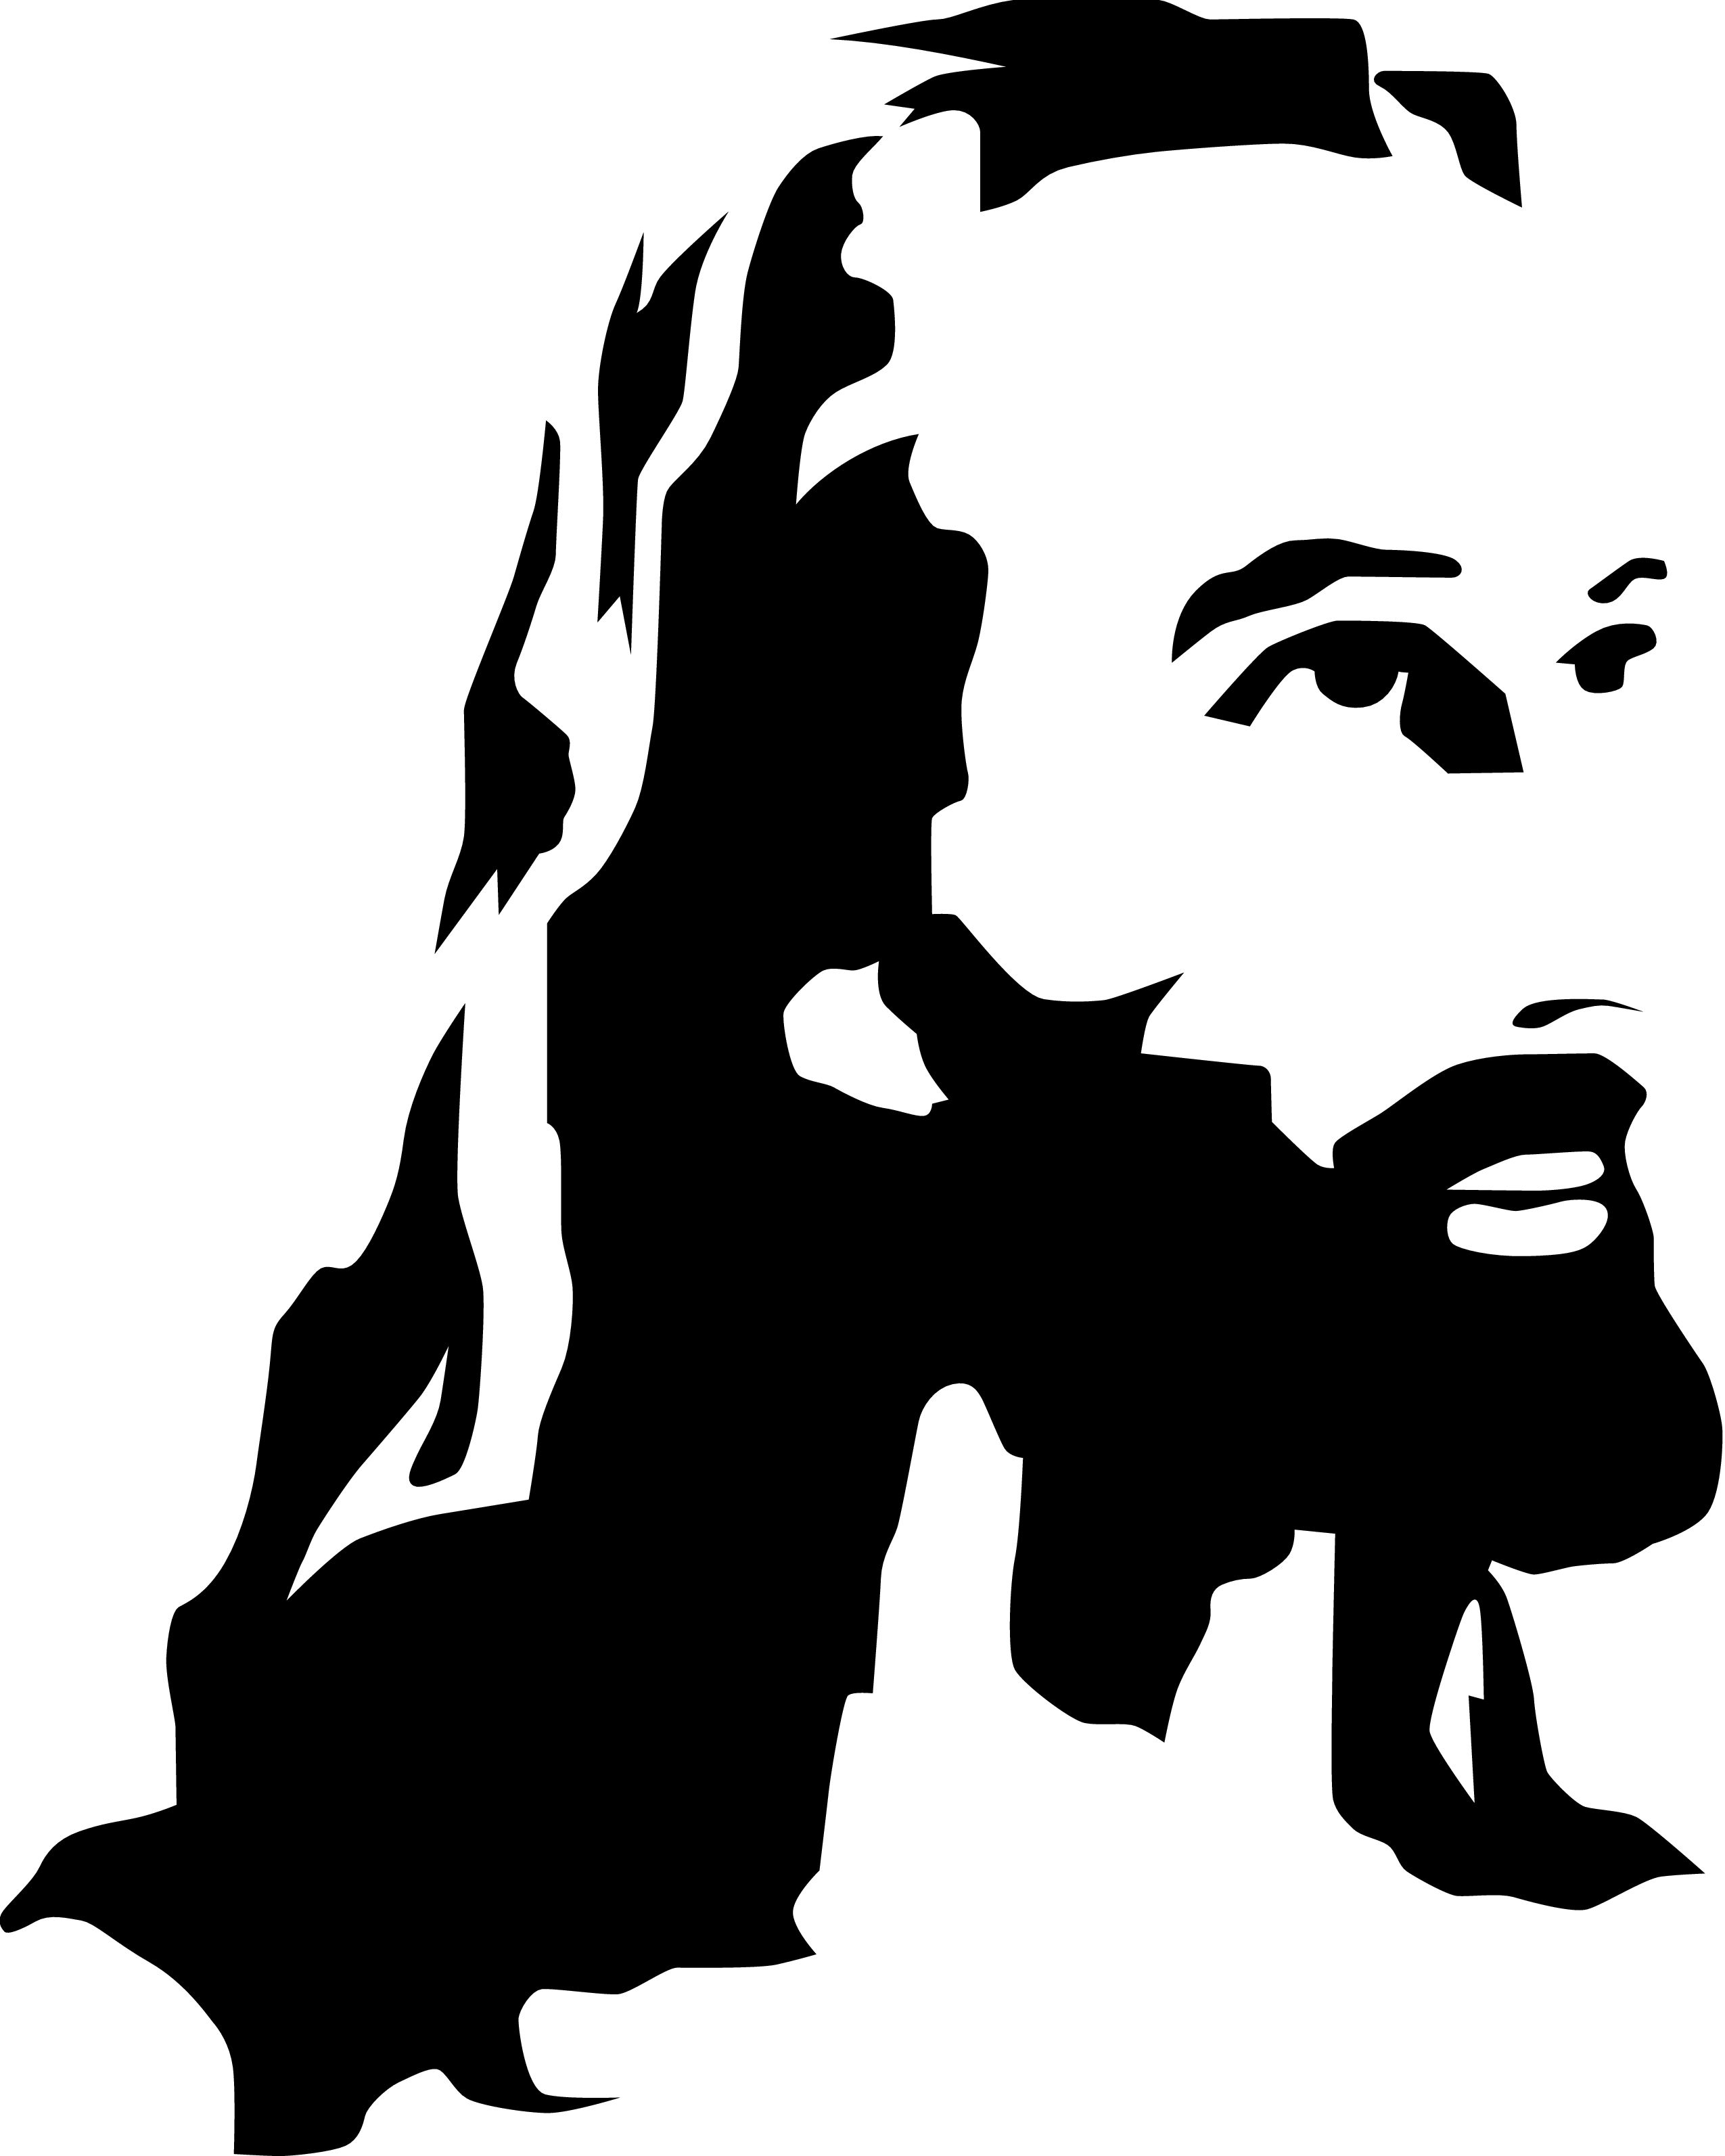 Free coloring pages jesus raises lazarus - Jesus Christ Black And White Drawing Jesus Pictures Black And White Jesus Raises Lazarus